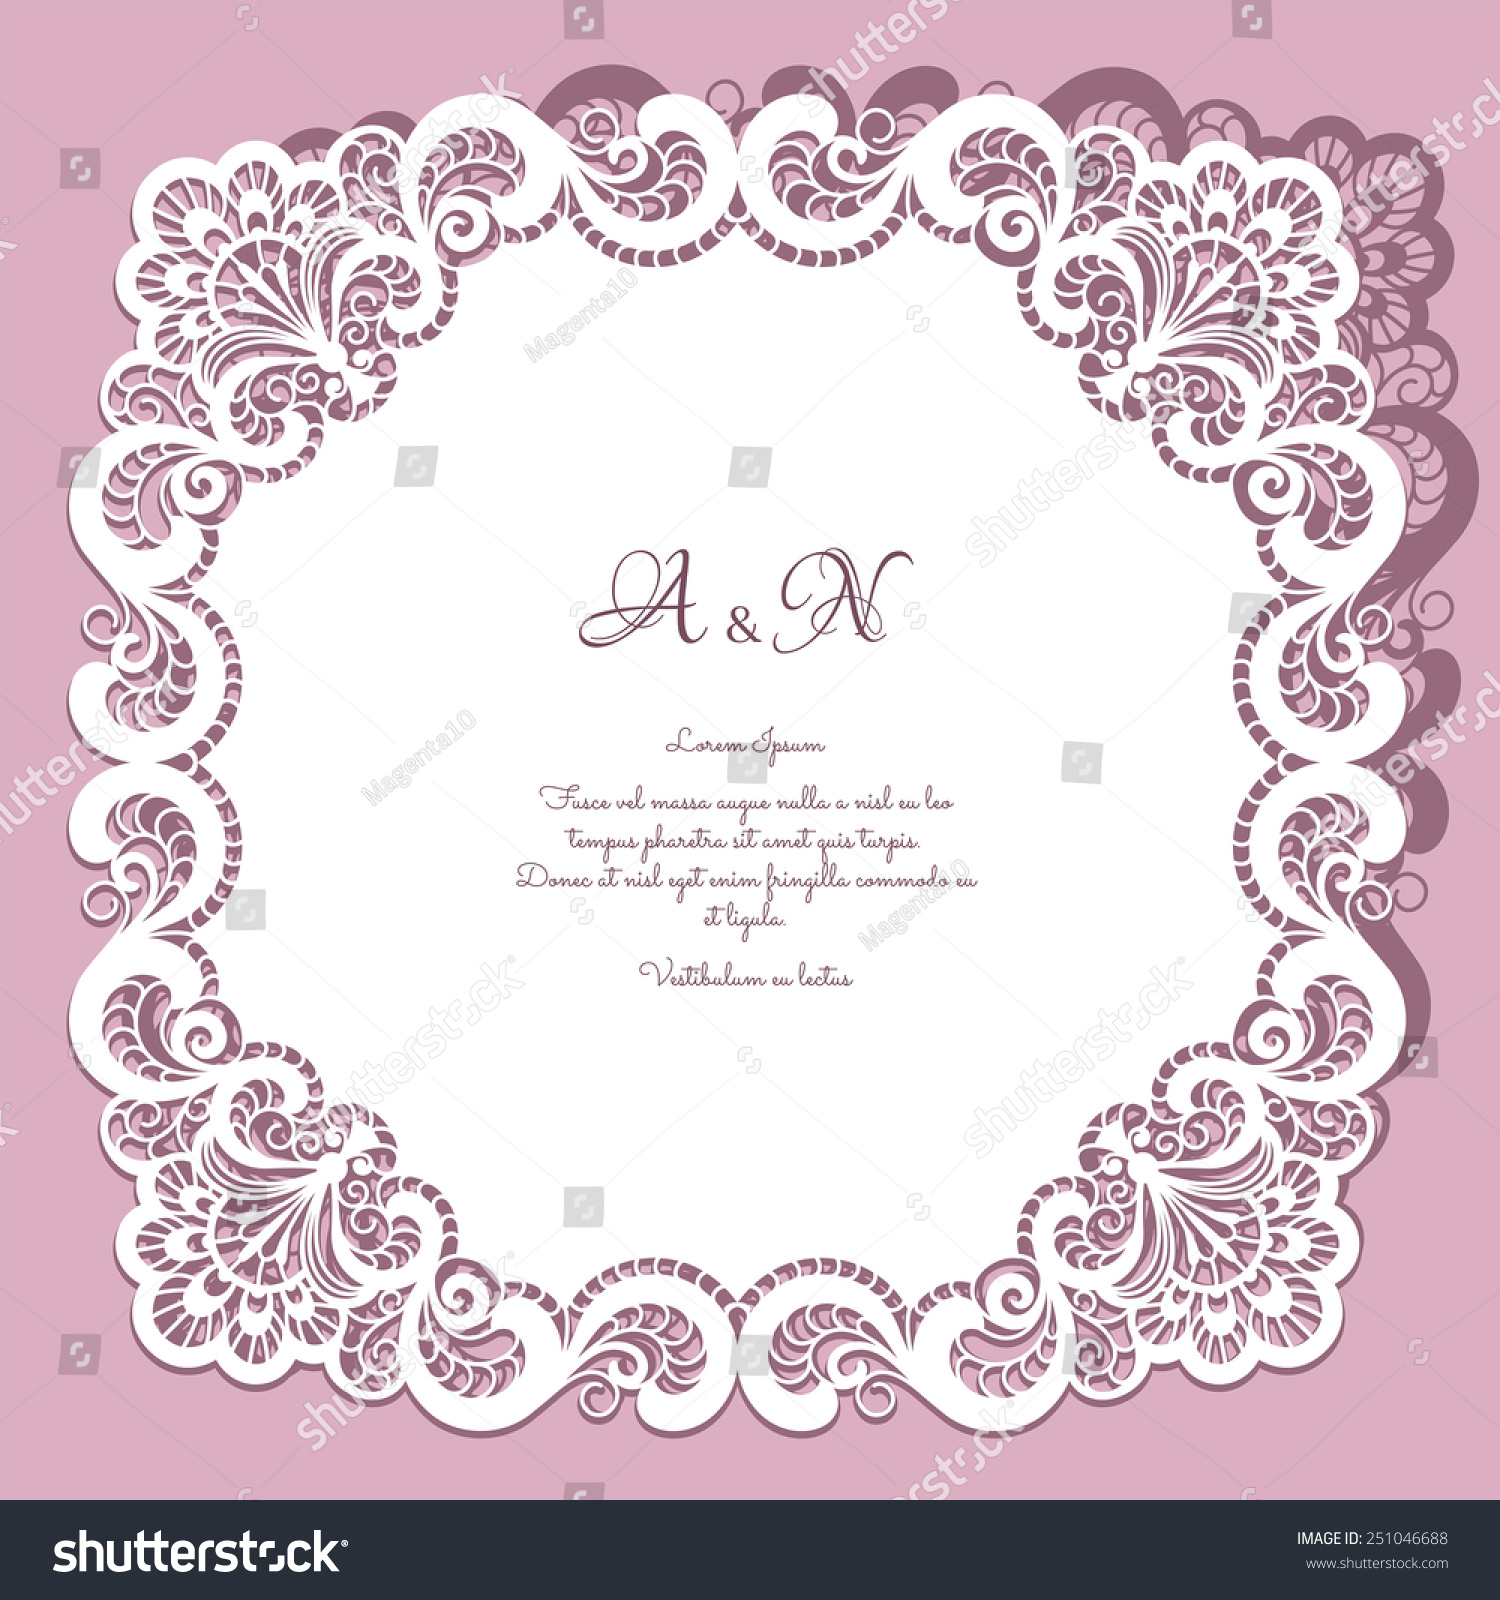 Square Paper Lace Frame Lacy Doily Stock Vector 251046688 ...